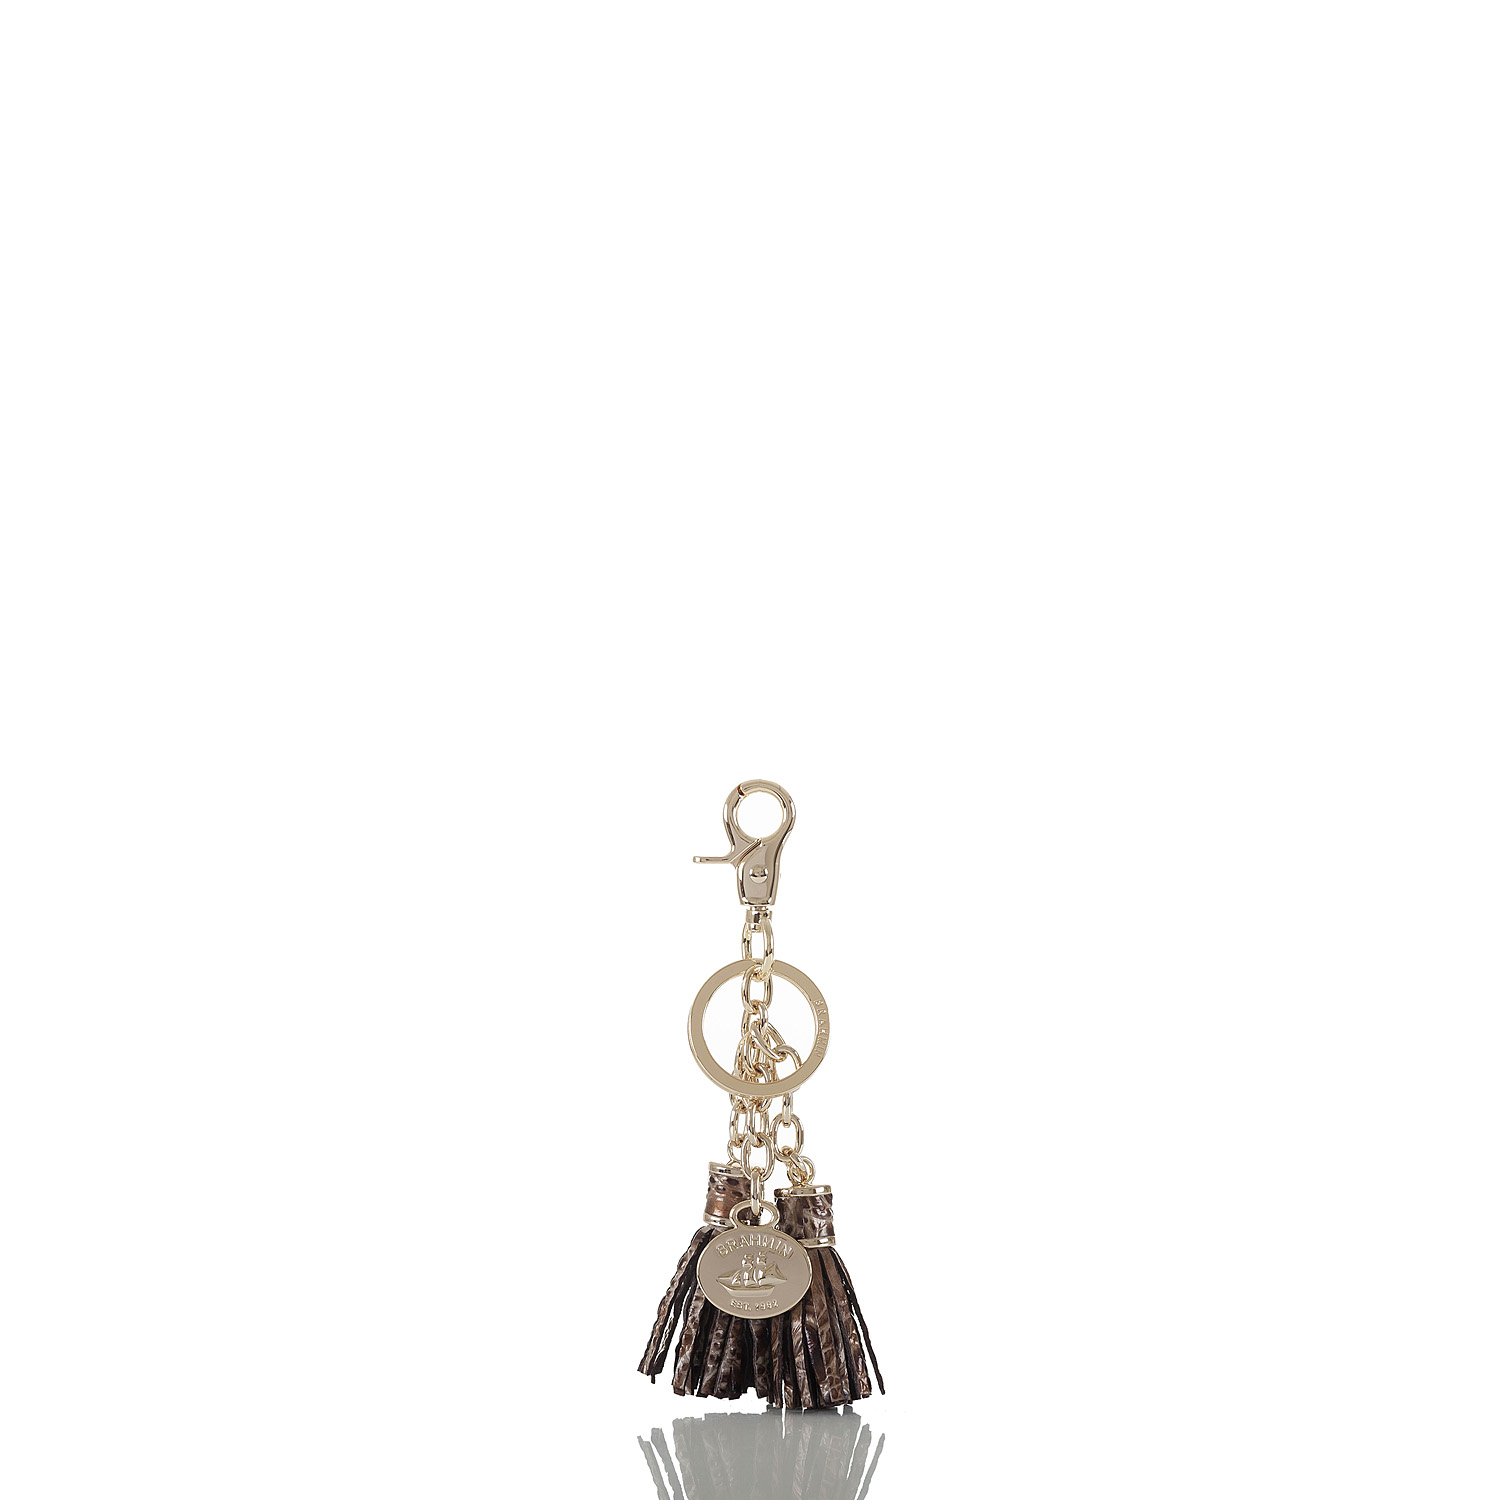 Tassel Key Ring Bark Melbourne